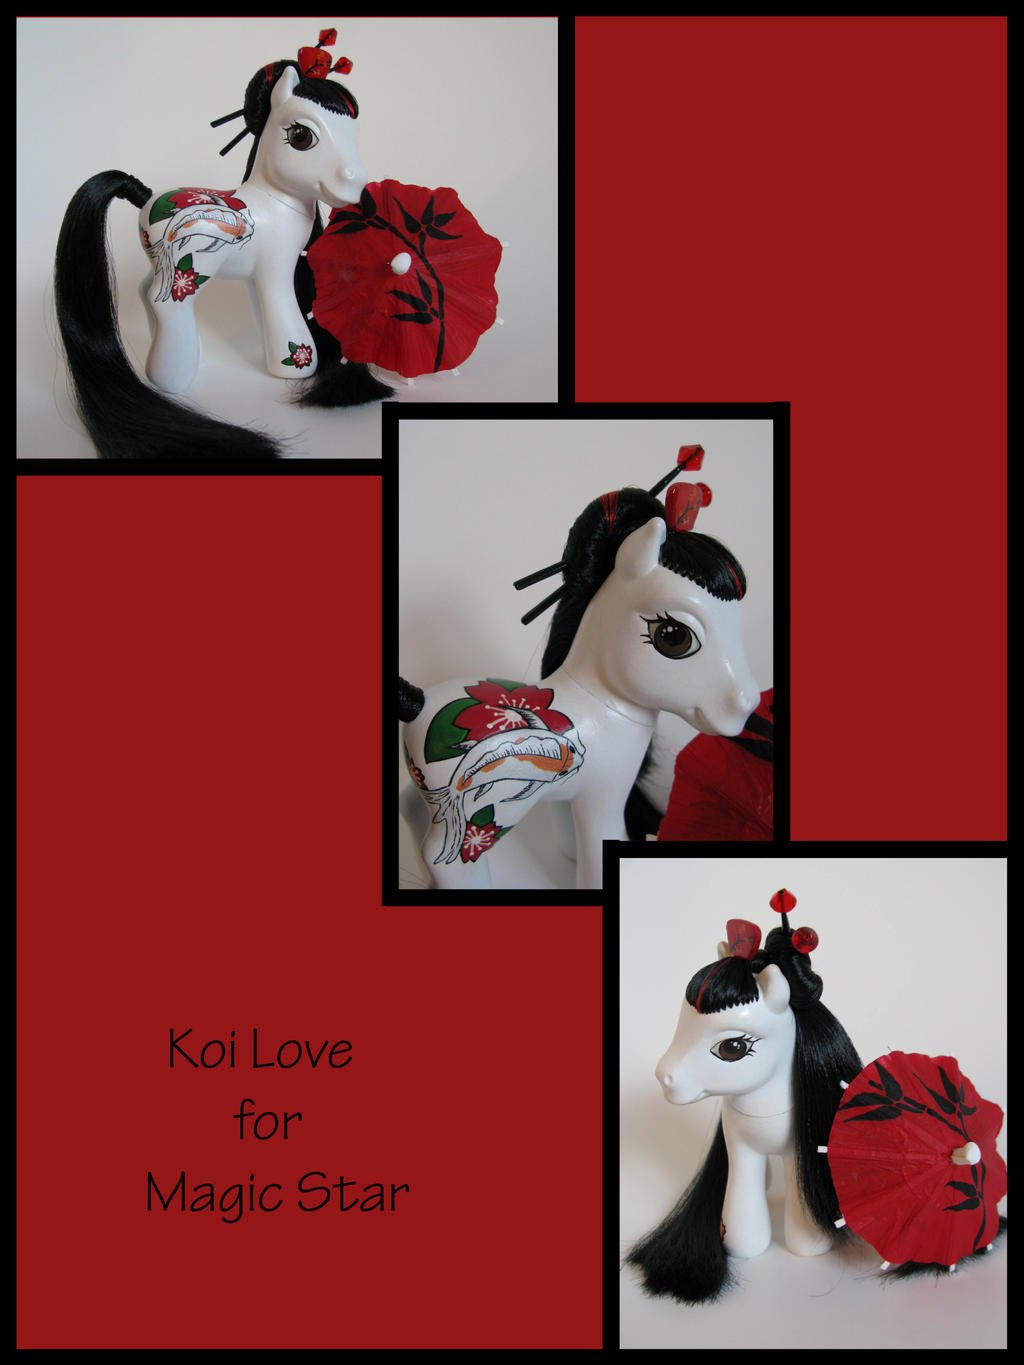 Koi Love for Magic Star by Sweetlittlejenny